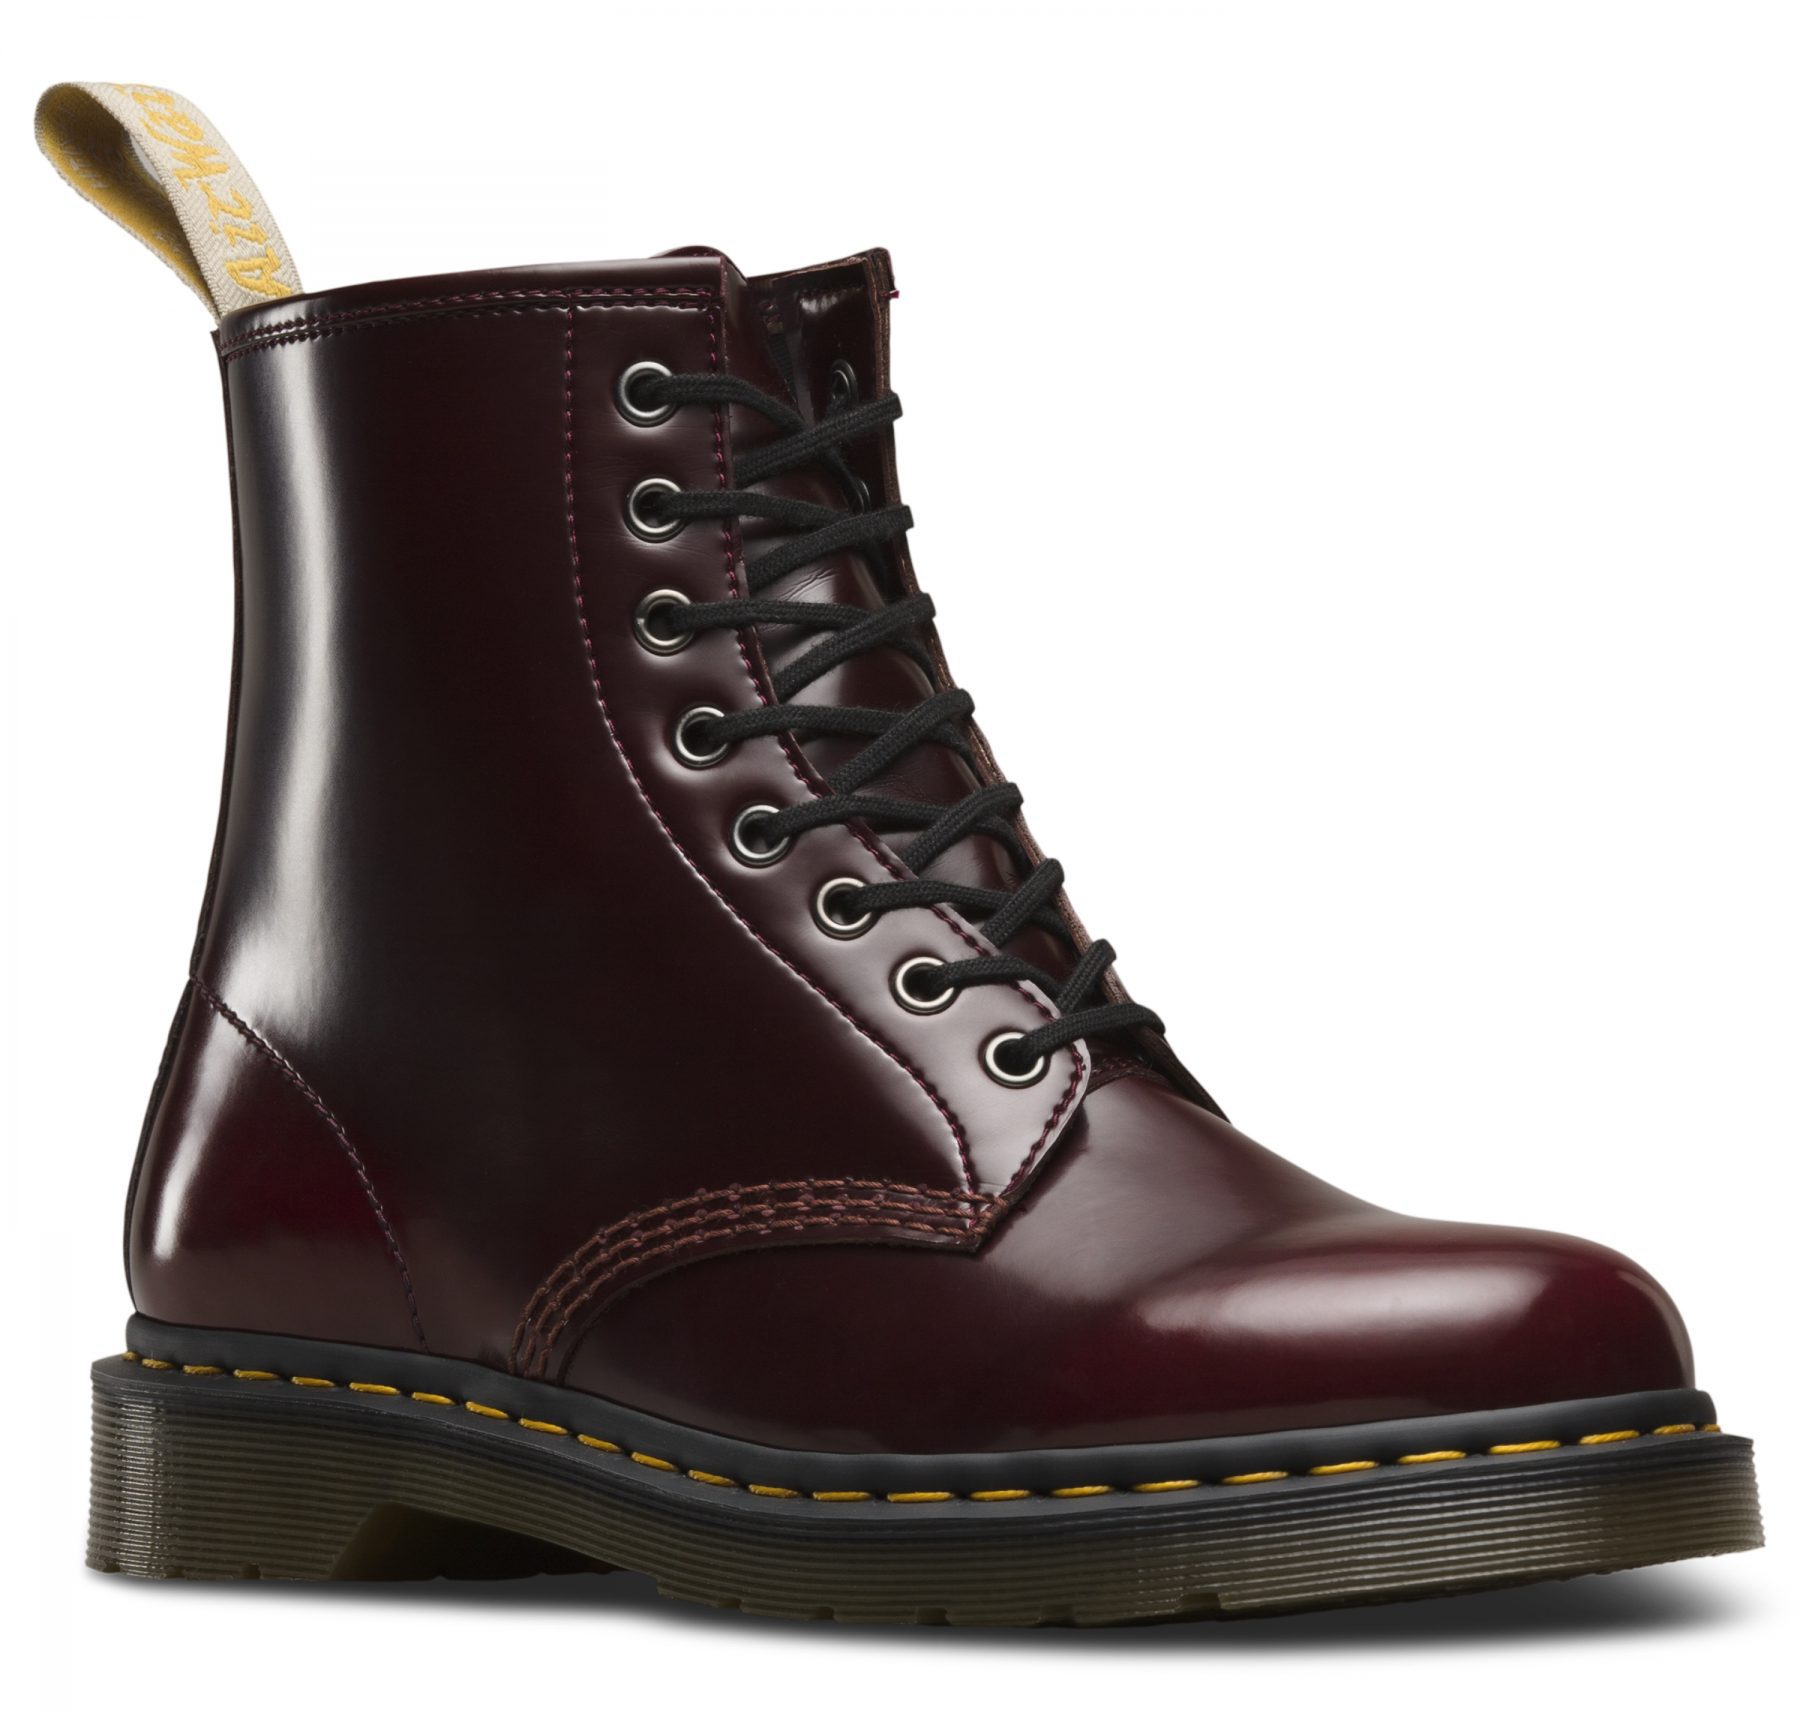 Dr. Martens Add to Their Vegan 'Leather' Range 1